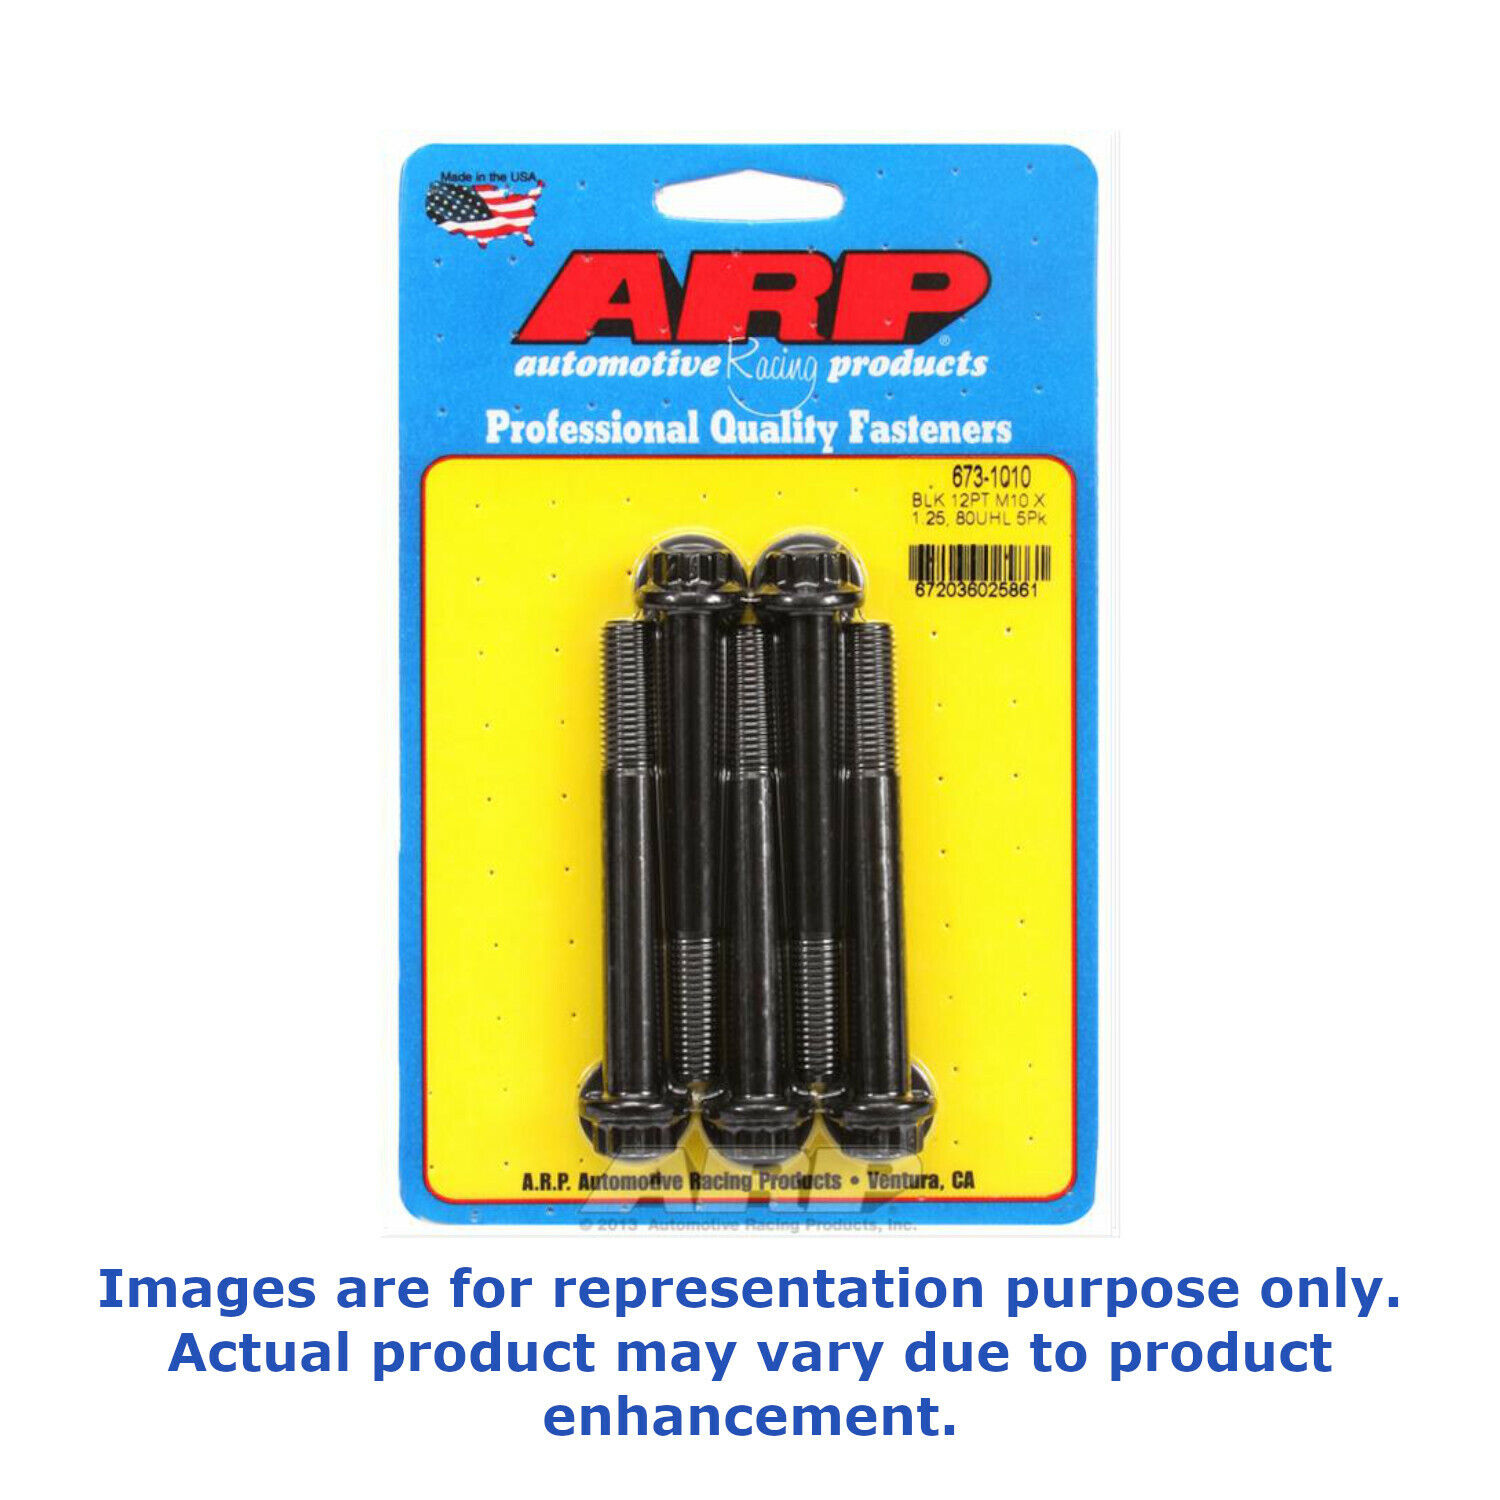 673-1010 ARP Bolt 10mm x 1.25 80mm Long 12mm 12 Point Head Washers Pack 5